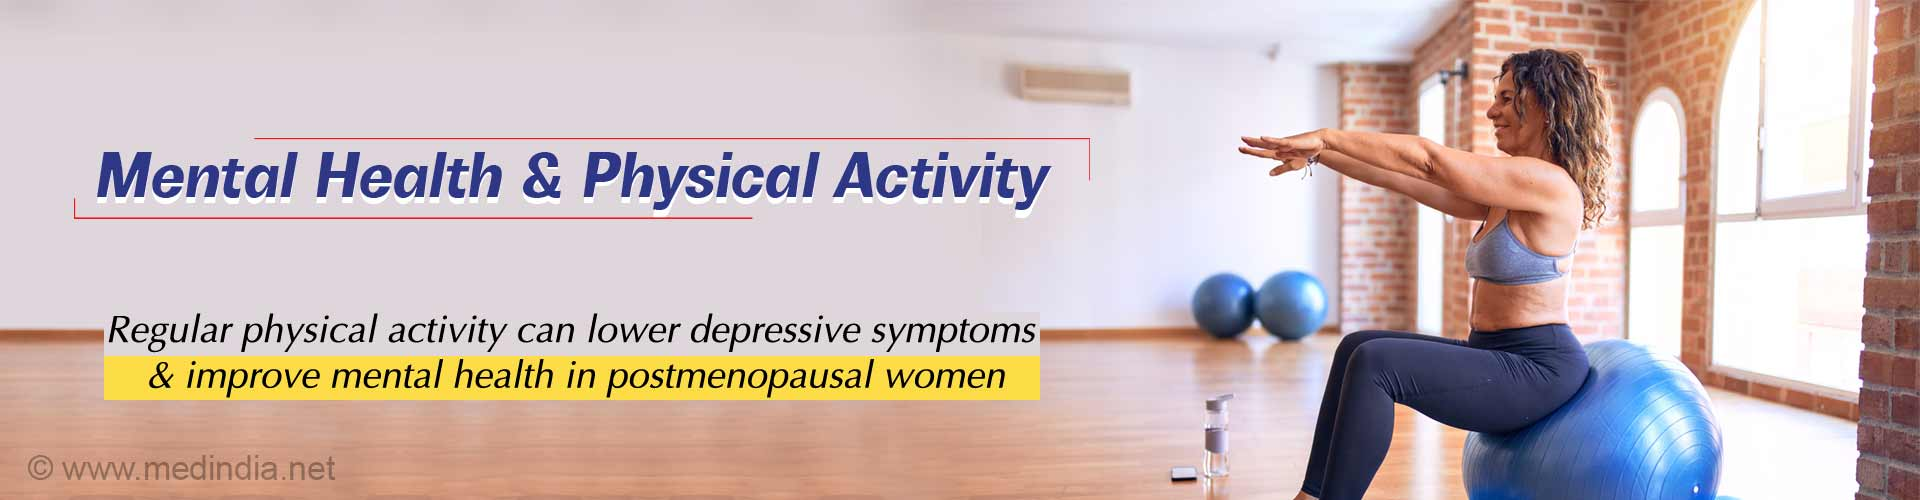 Physical Activity Beneficial for Mental Well-Being in Postmenopausal Women